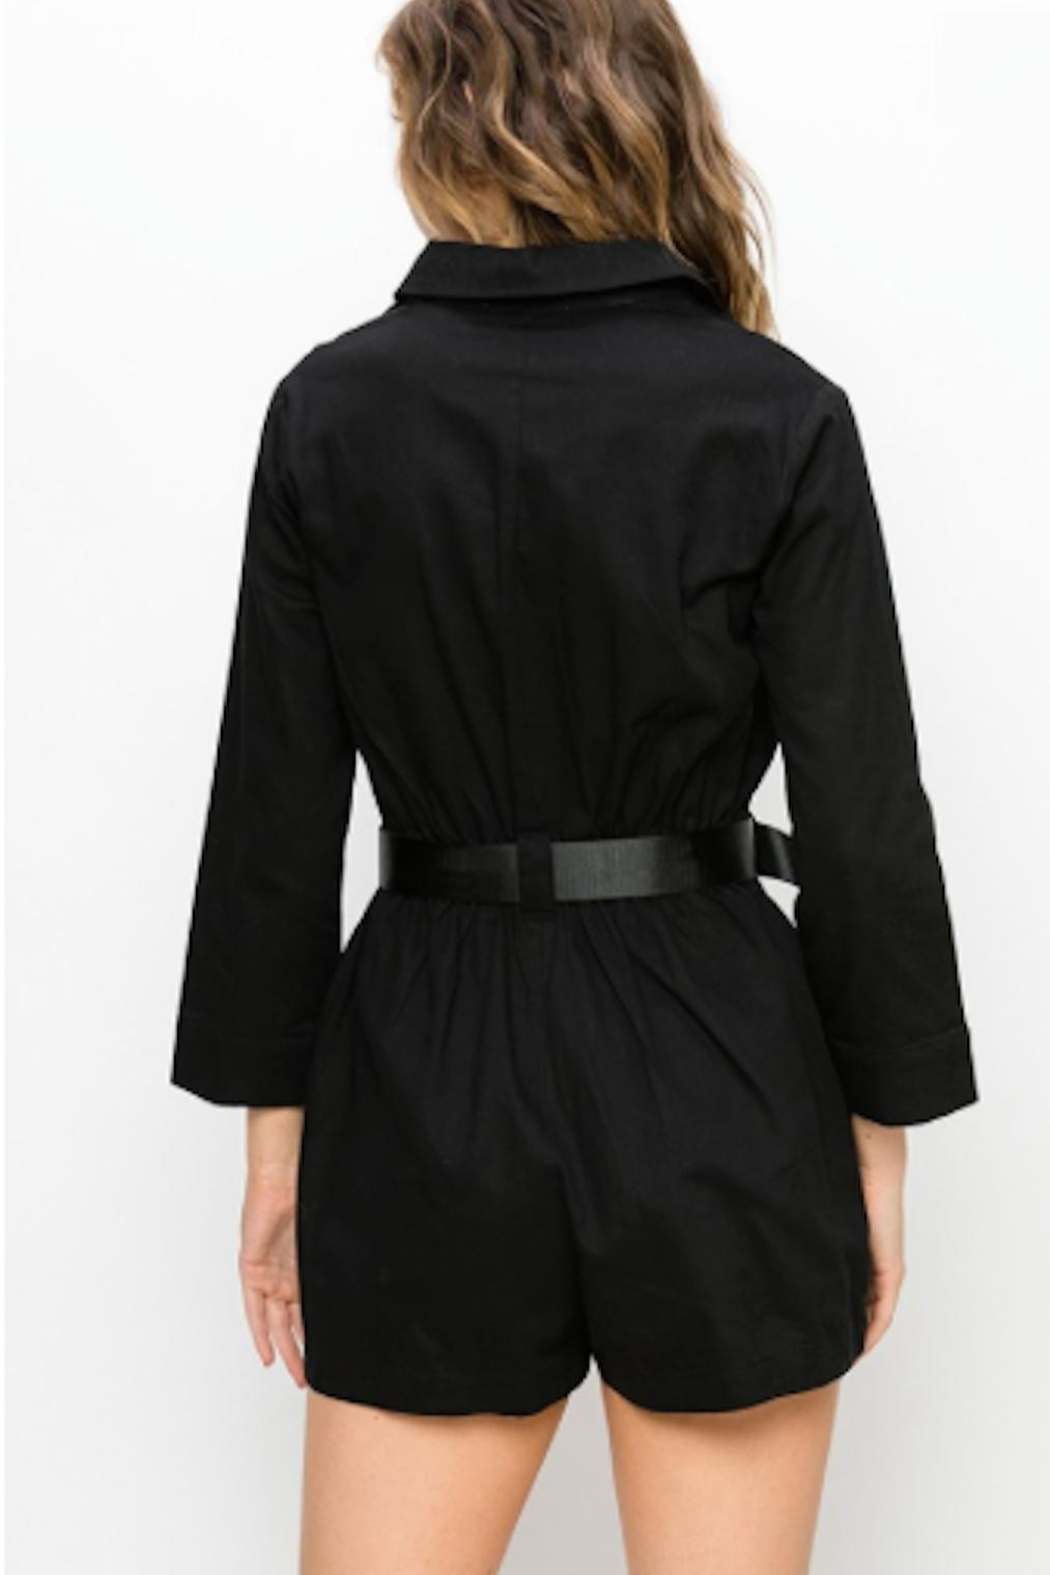 TIMELESS Utility Romper - Side Cropped Image